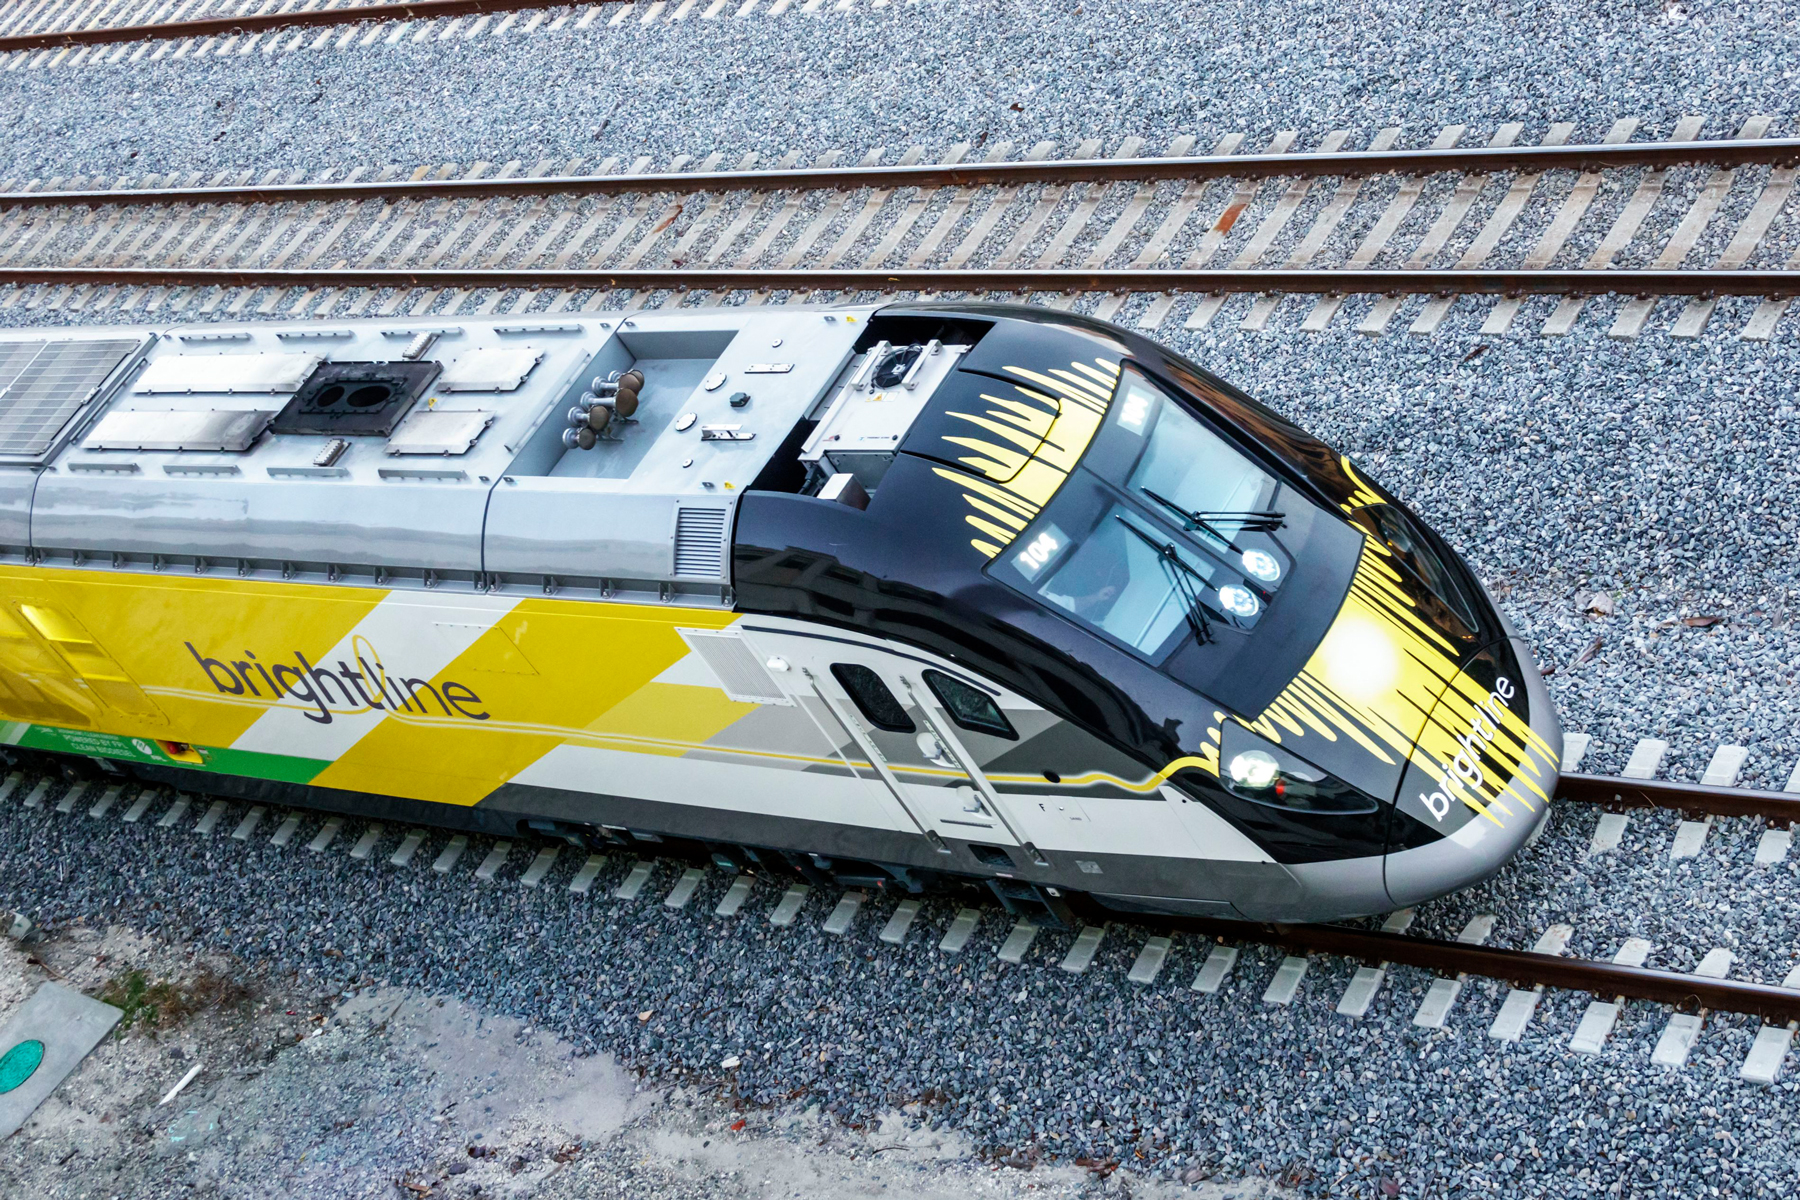 Brightline passenger train